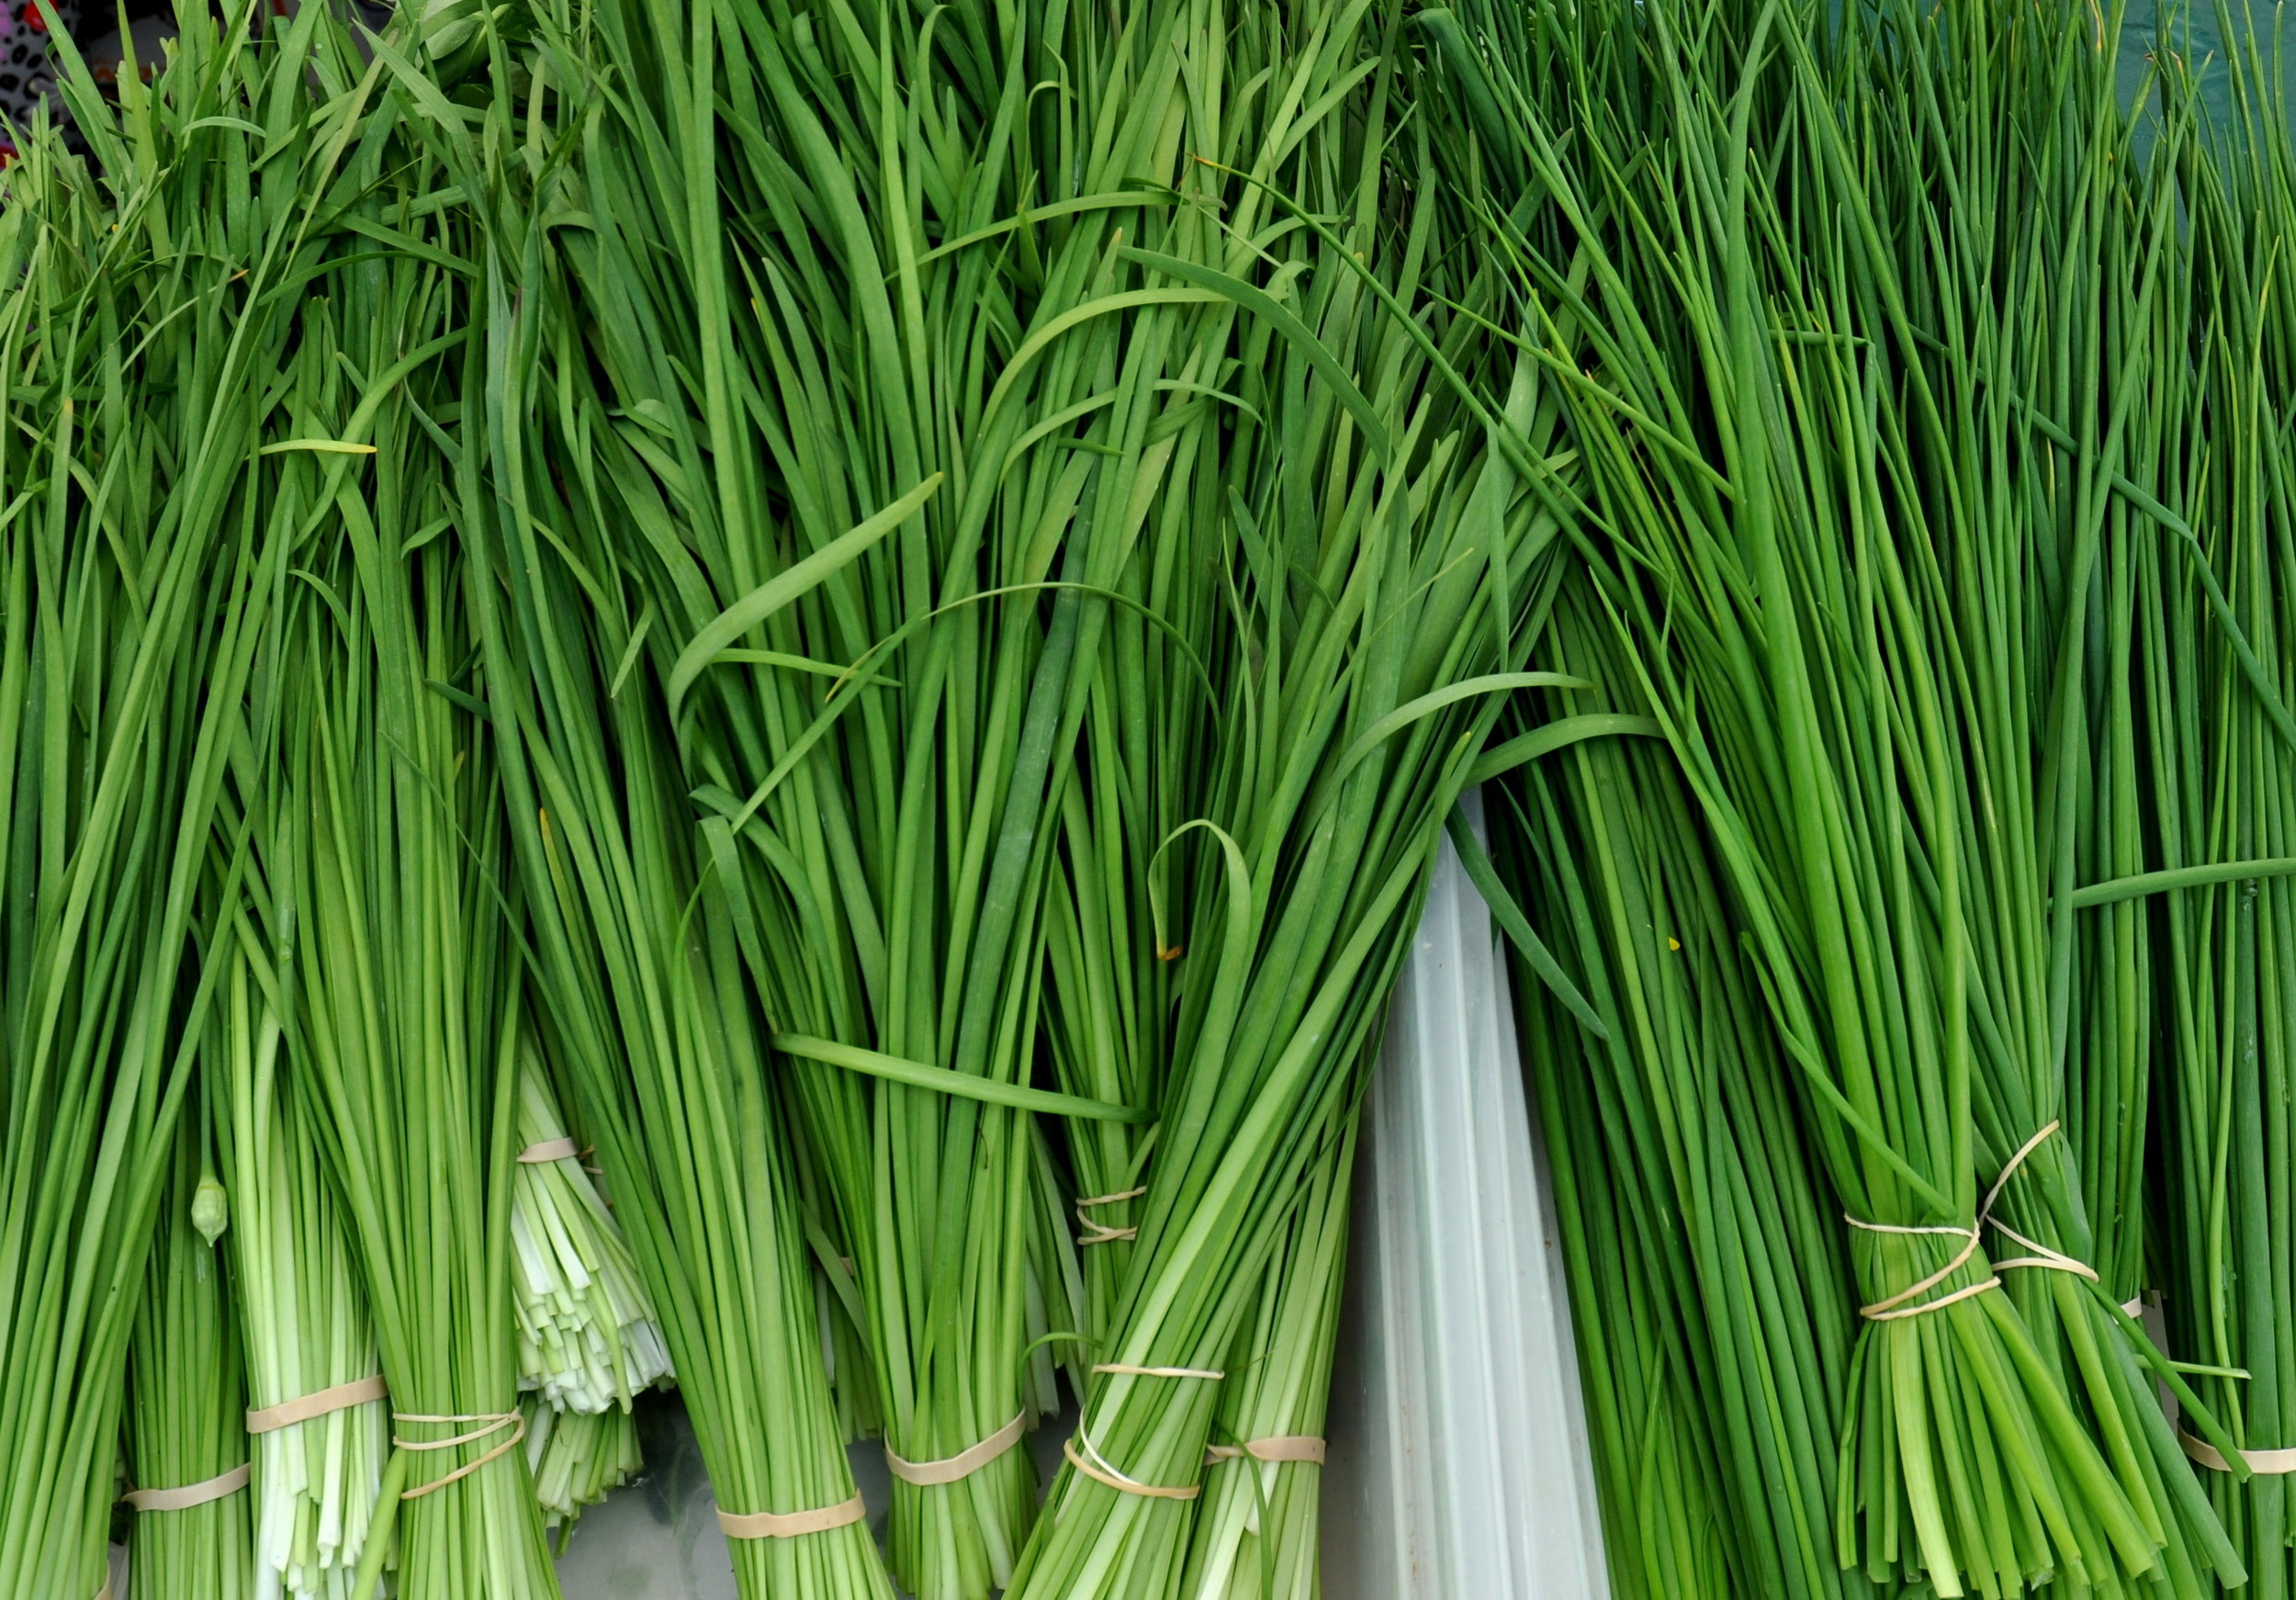 Garlic chives (left) and chives from Children's Garden. Photo copyright 2013 by Zachary D. Lyons.